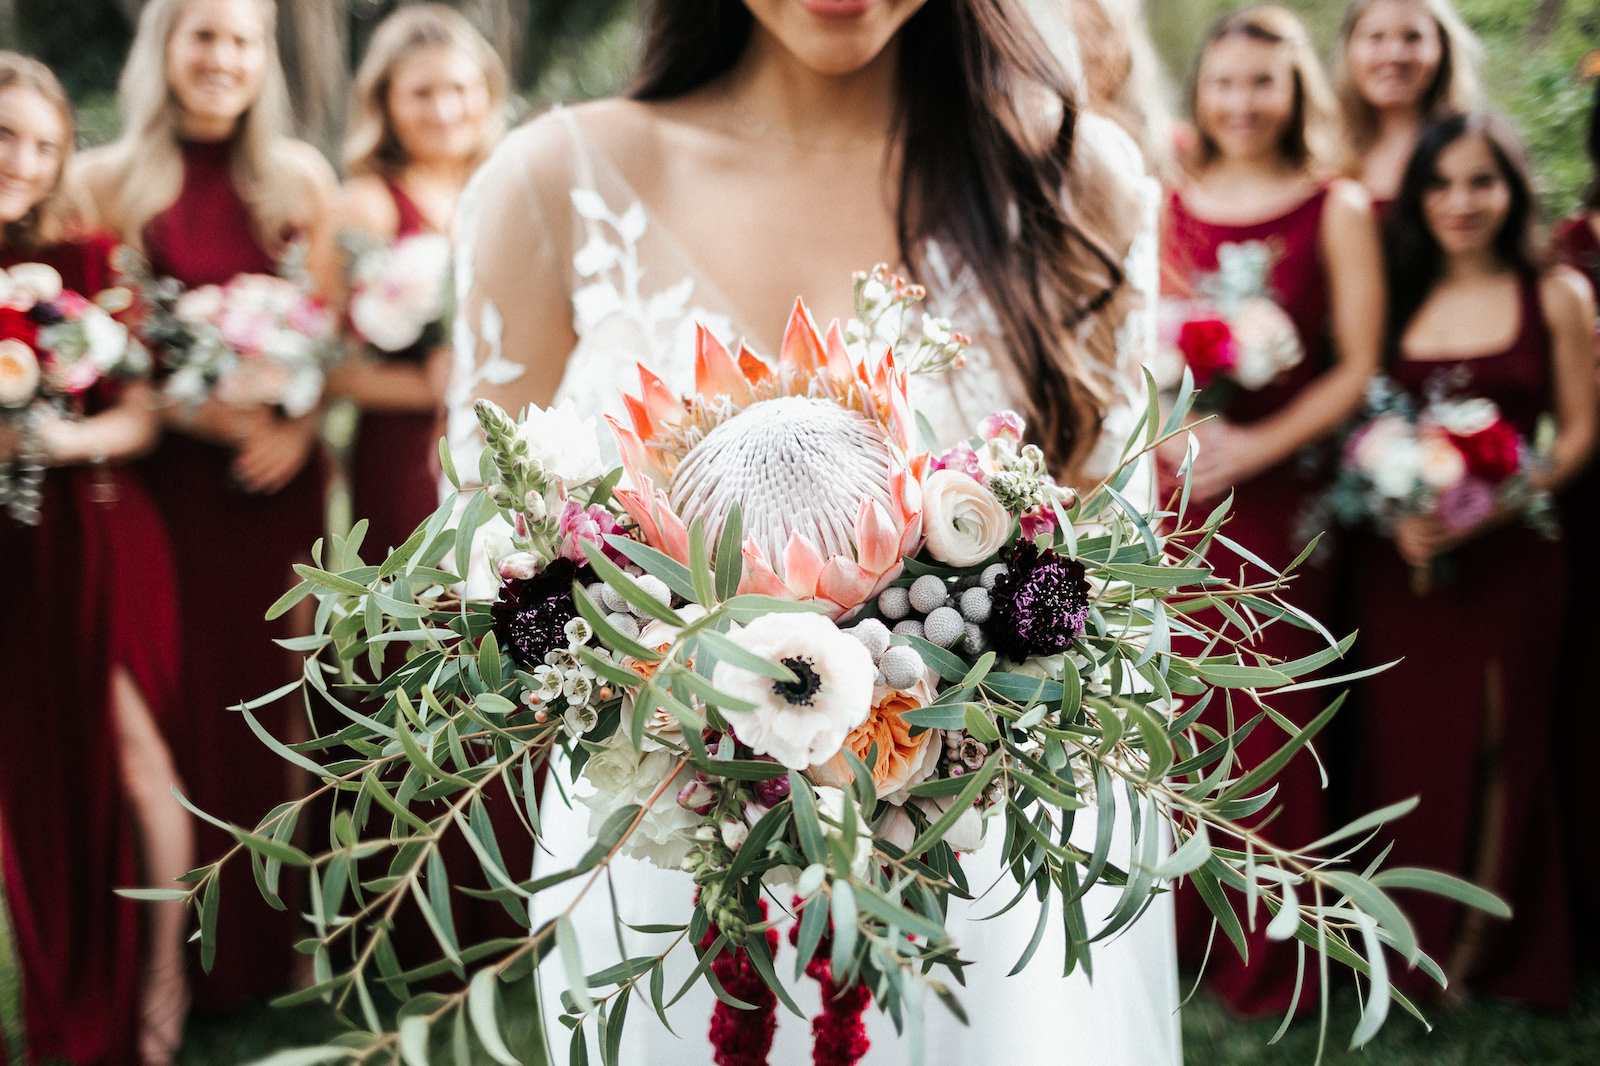 St. Petersburg Bride Holding Exotic Tropical Inspired Bridal Bouquet with Bright Pink King Protea, White, Dark Purple, Burgundy, Wine Florals with Greenery | Florida Wedding Florist Posies Flower Truck | Tampa Bay Wedding Planner John Campbell Weddings